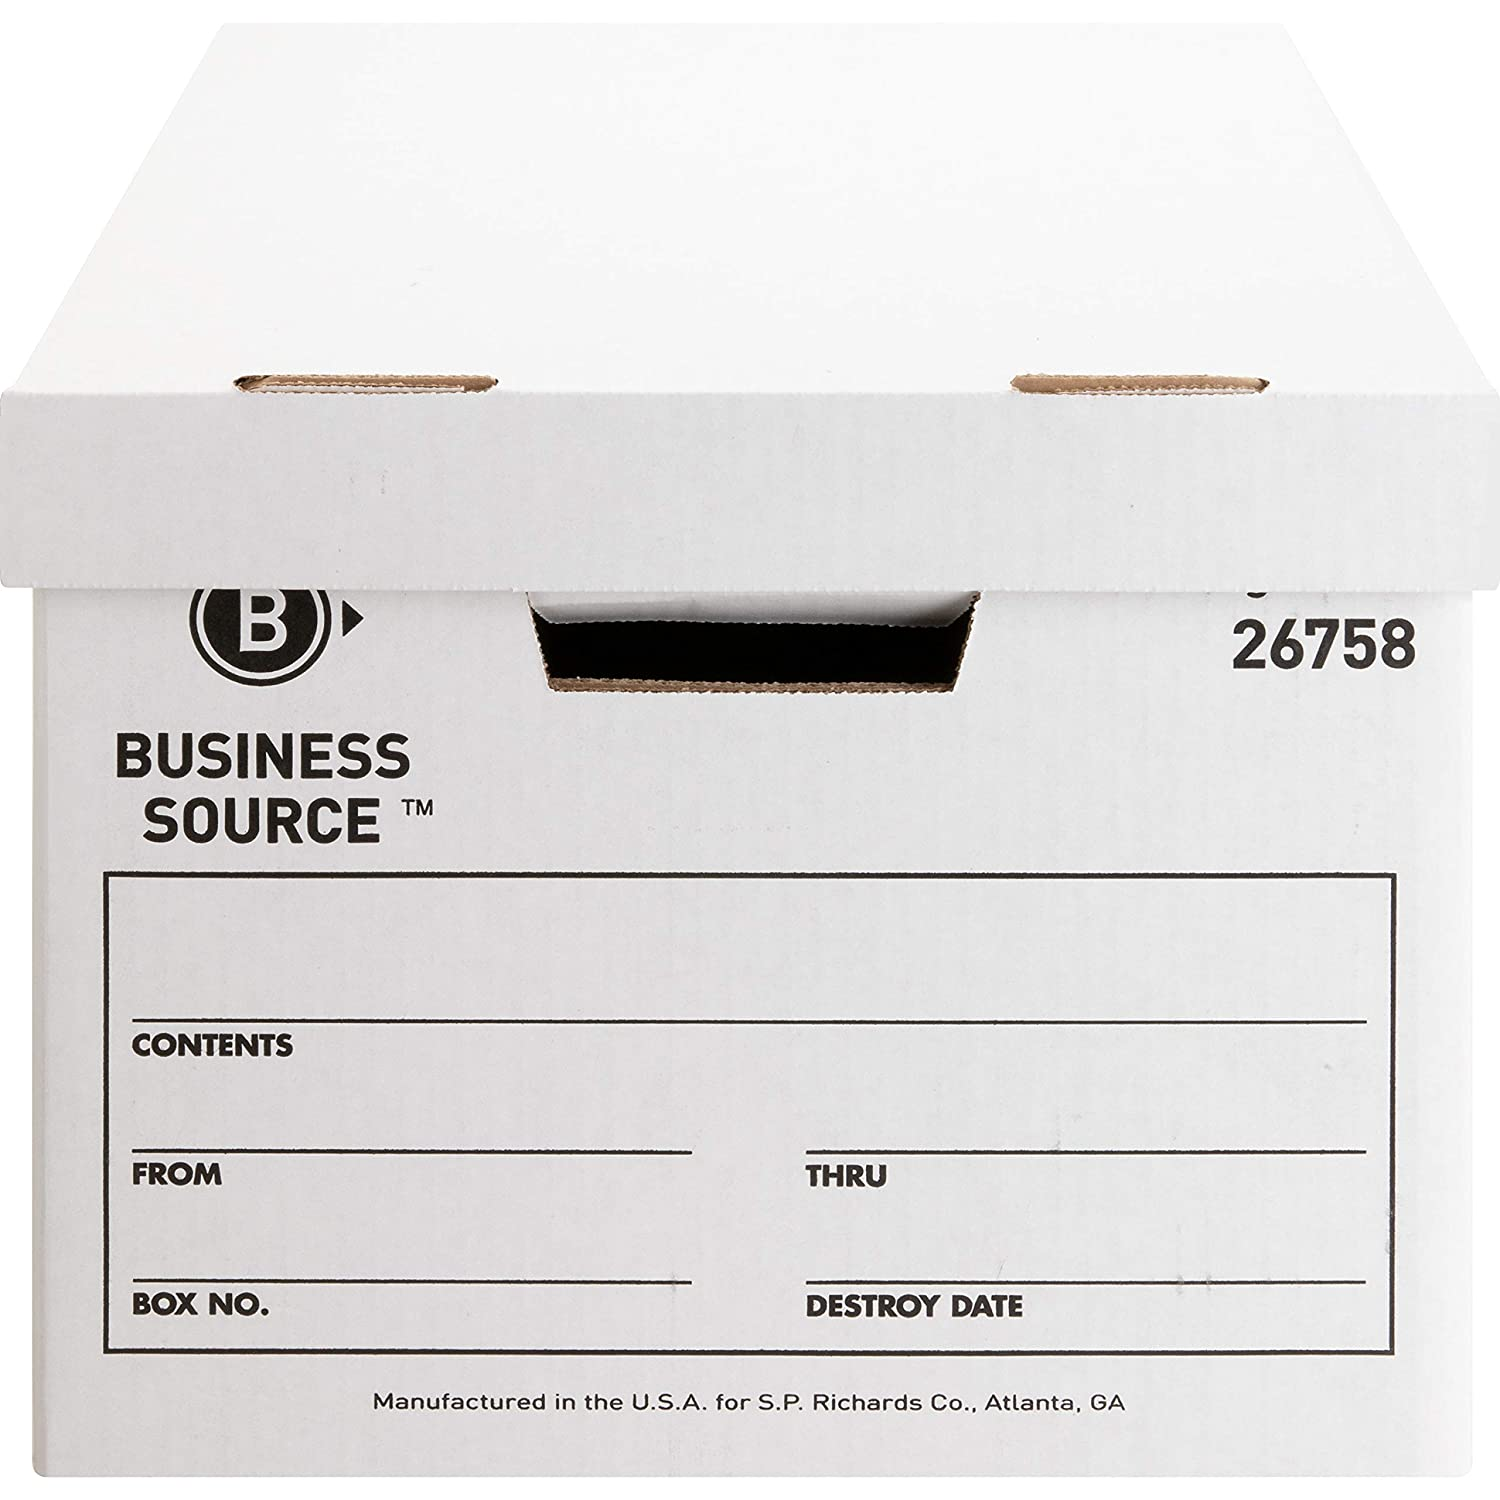 Uno 26758 BSN26758 Business Source Lift-Off Lid Medium Duty Storage Box SP Richards